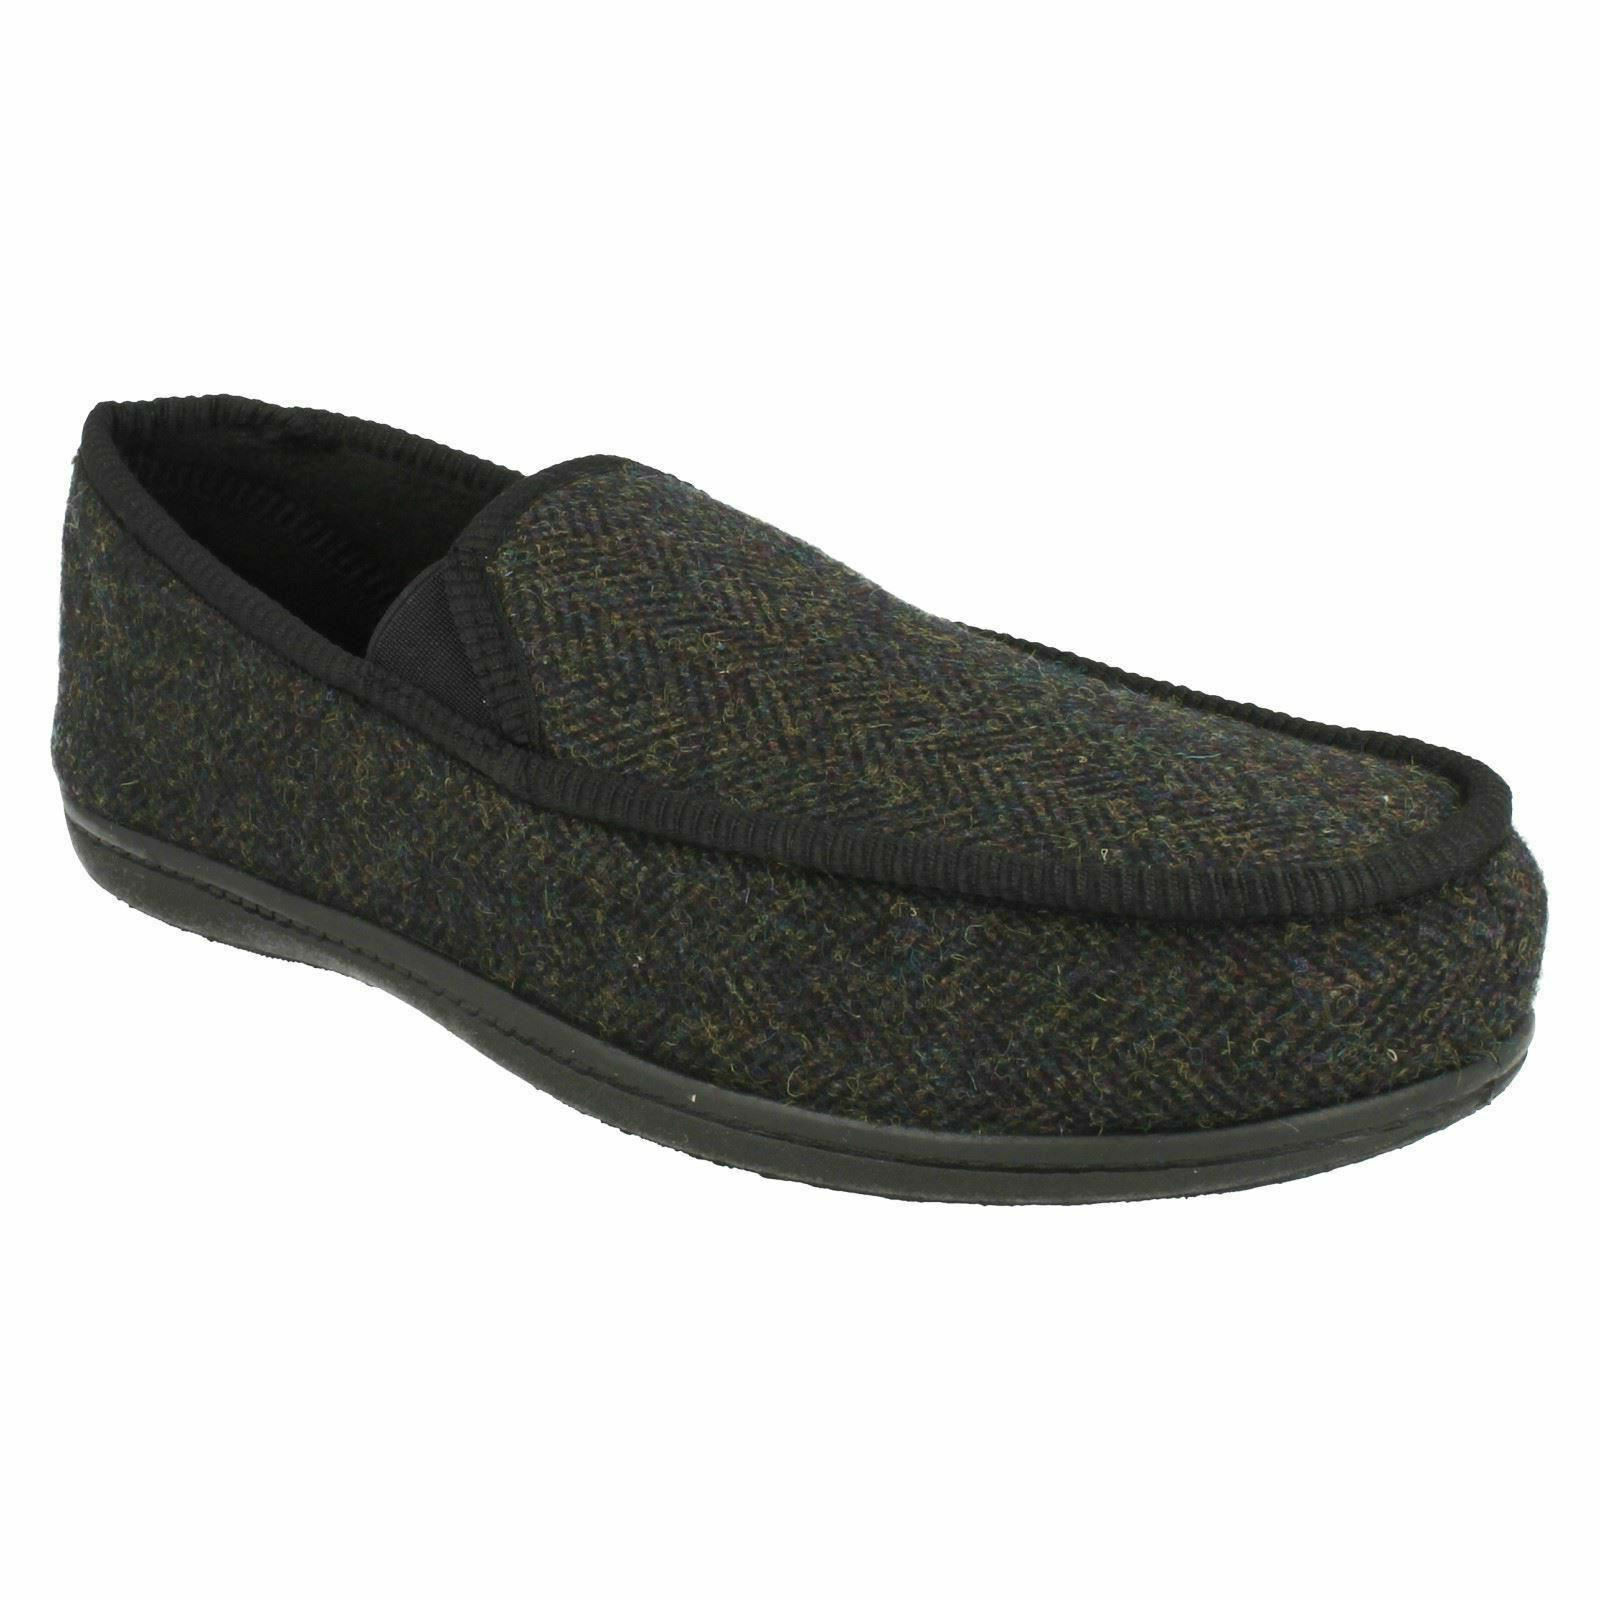 KING ON DONARD Hombre CLARKS SLIP ON KING WARM HOUSE WINTER INDOOR SLIPPERS Zapatos b7890b